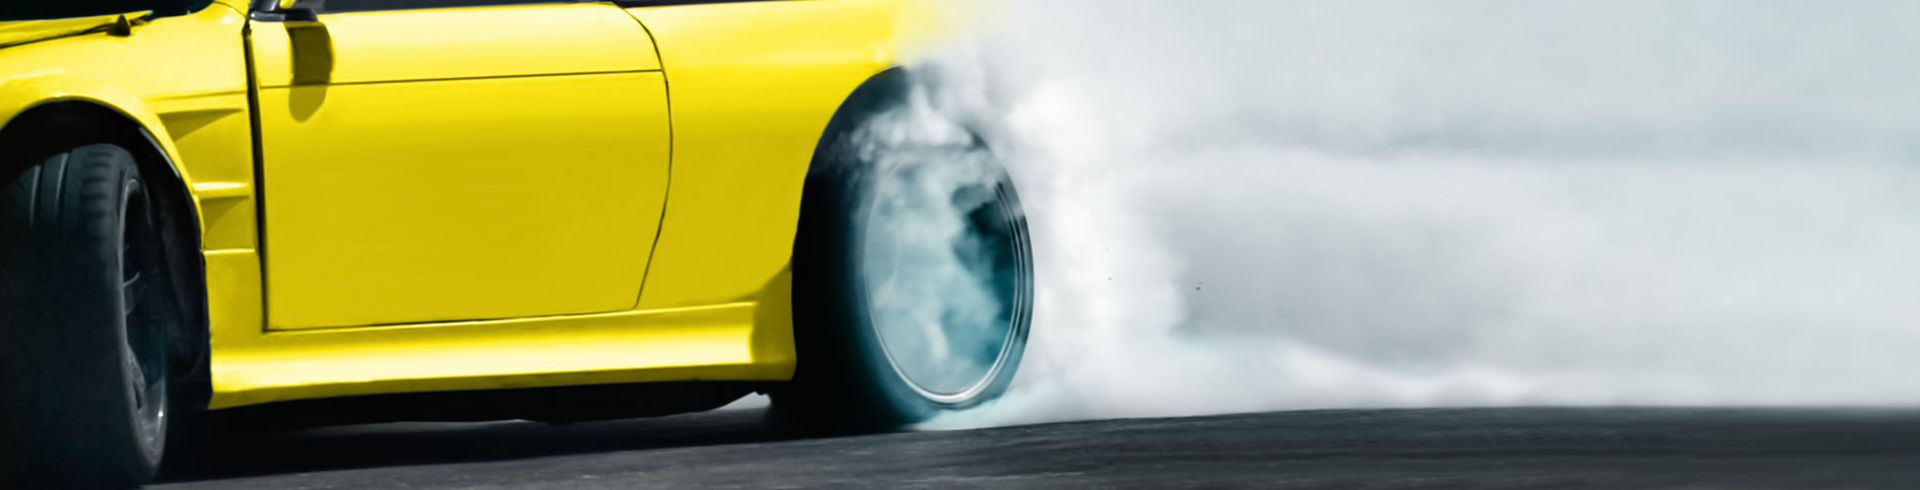 Street racing and stunt driving